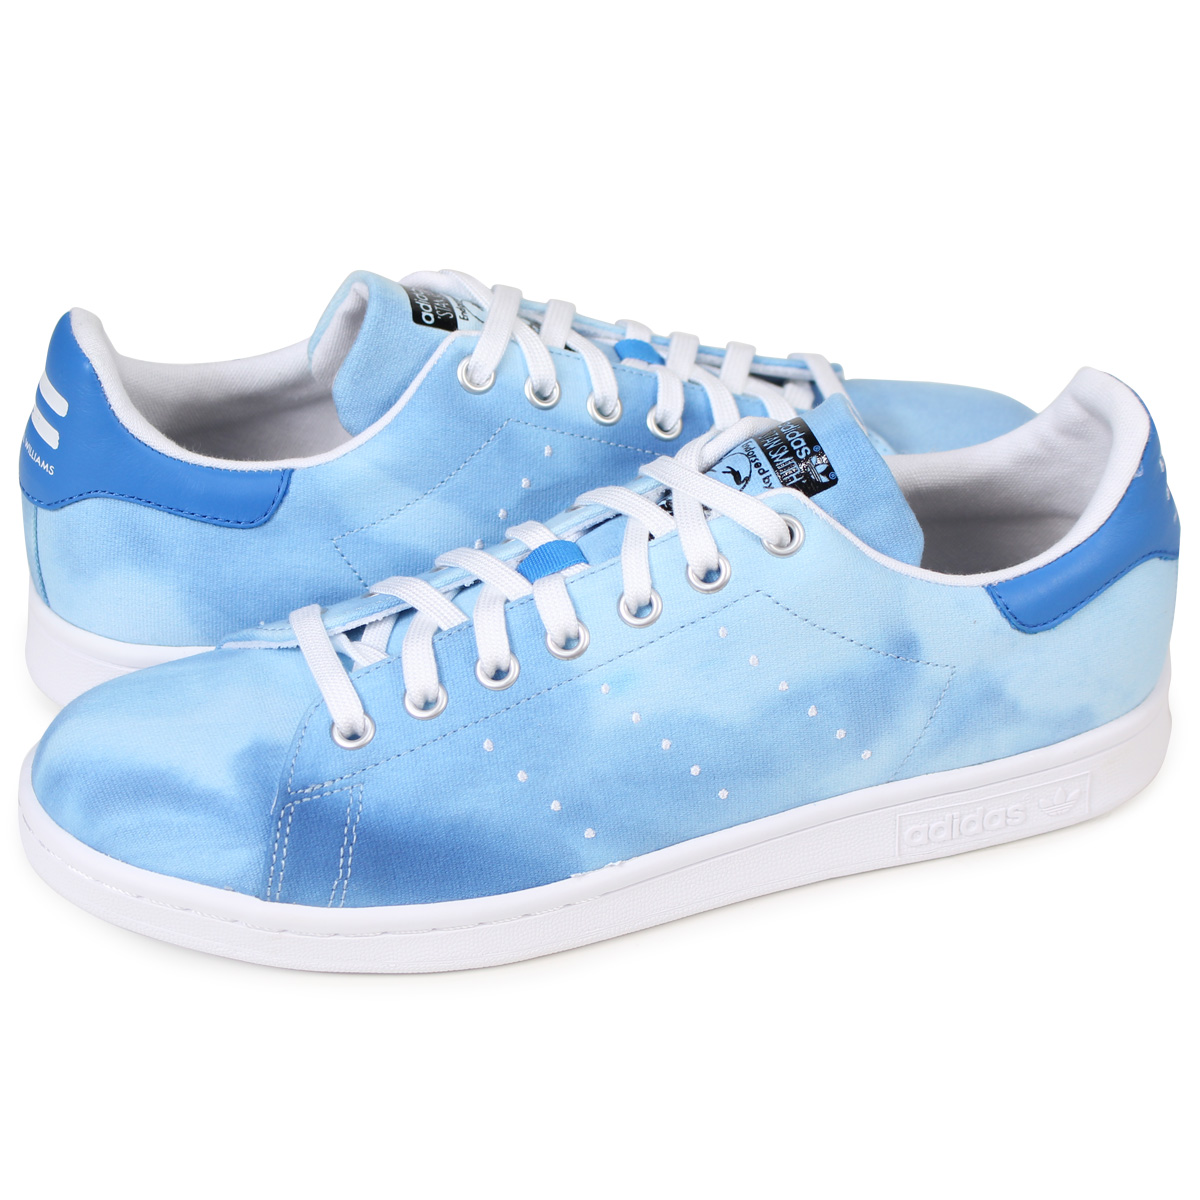 5e80519abd5a5 Whats up Sports  adidas Originals PW HU HOLI STAN SMITH Adidas Stan Smith  sneakers Farrell Williams men collaboration AC7045 blue originals  load  planned ...